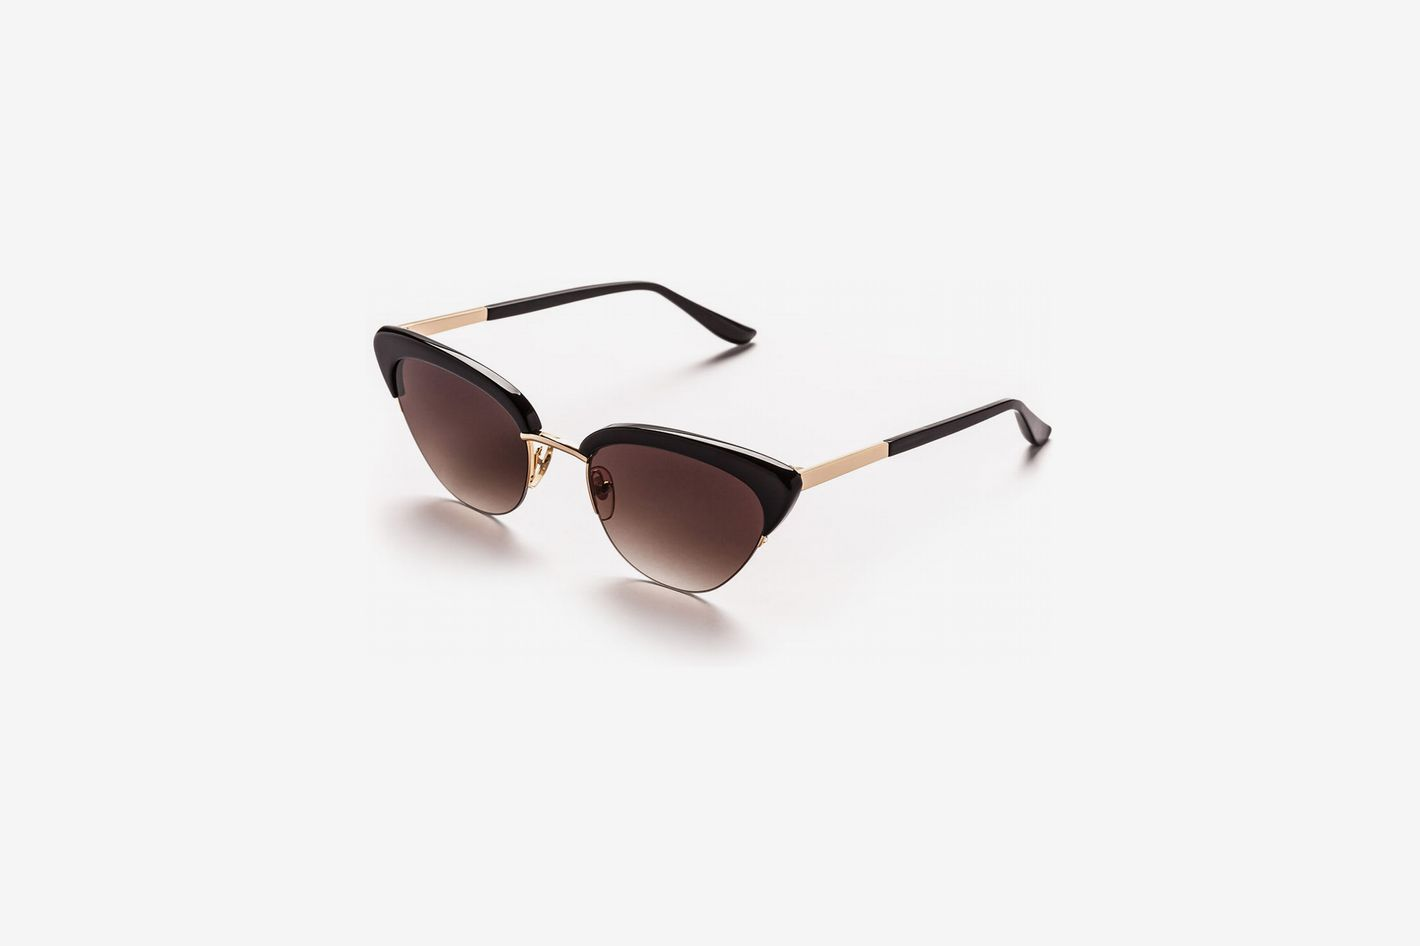 Sunday Somewhere Pixie Acetate & Metal Cat-Eye Sunglasses